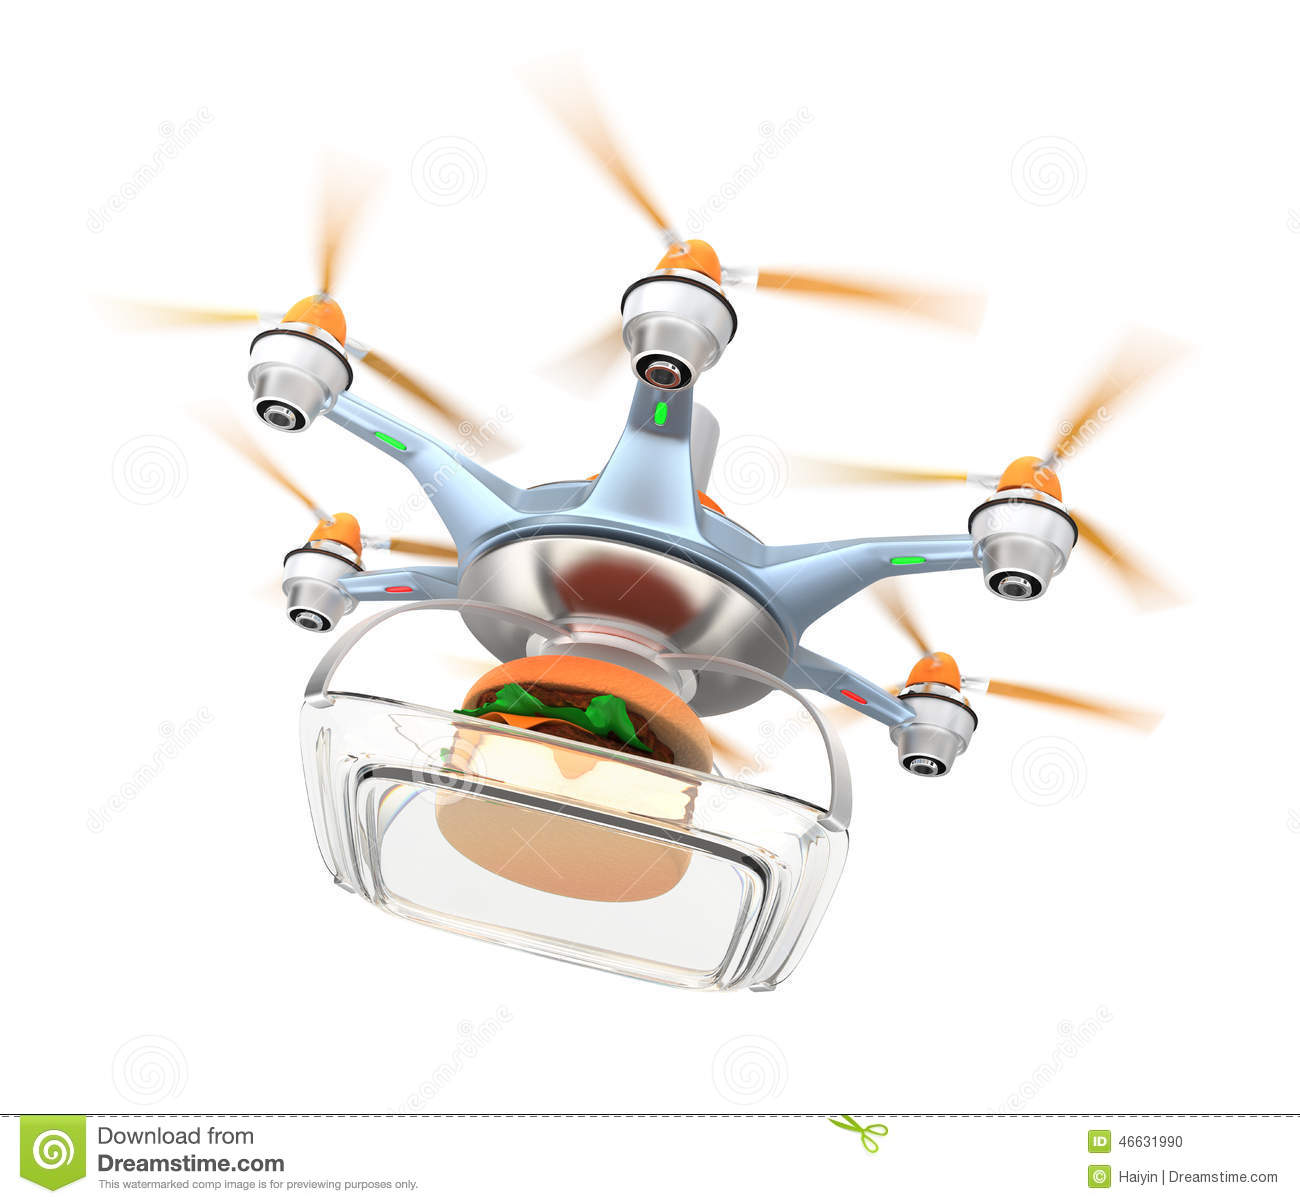 drone multicopter with Stock Photo Drone Carrying Hamburger Fast Food Delivery Concept Image46631990 on Custom Motor Output Mix Quadcopter likewise 22438 Hover Drone Hoverboard besides Stock Photo Drone Carrying Hamburger Fast Food Delivery Concept Image46631990 moreover Drone Vecteur Ic C3 B4ne Appareil Photo 1750345 further Watch.